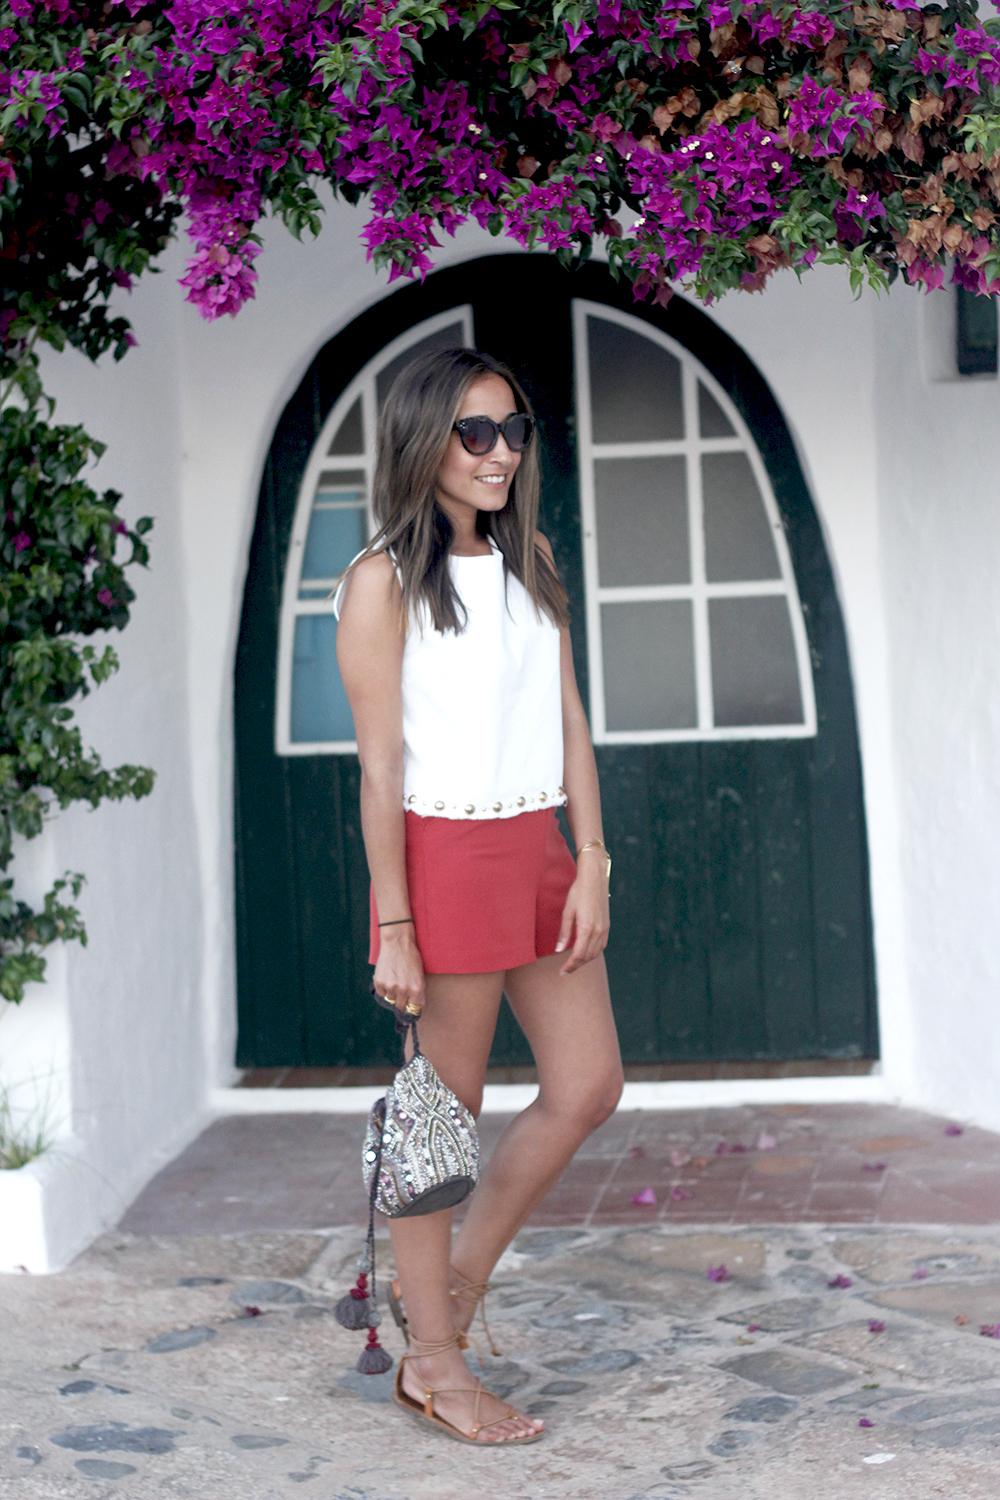 white top with shorts summer outfit flat sandals binibeca menorca13